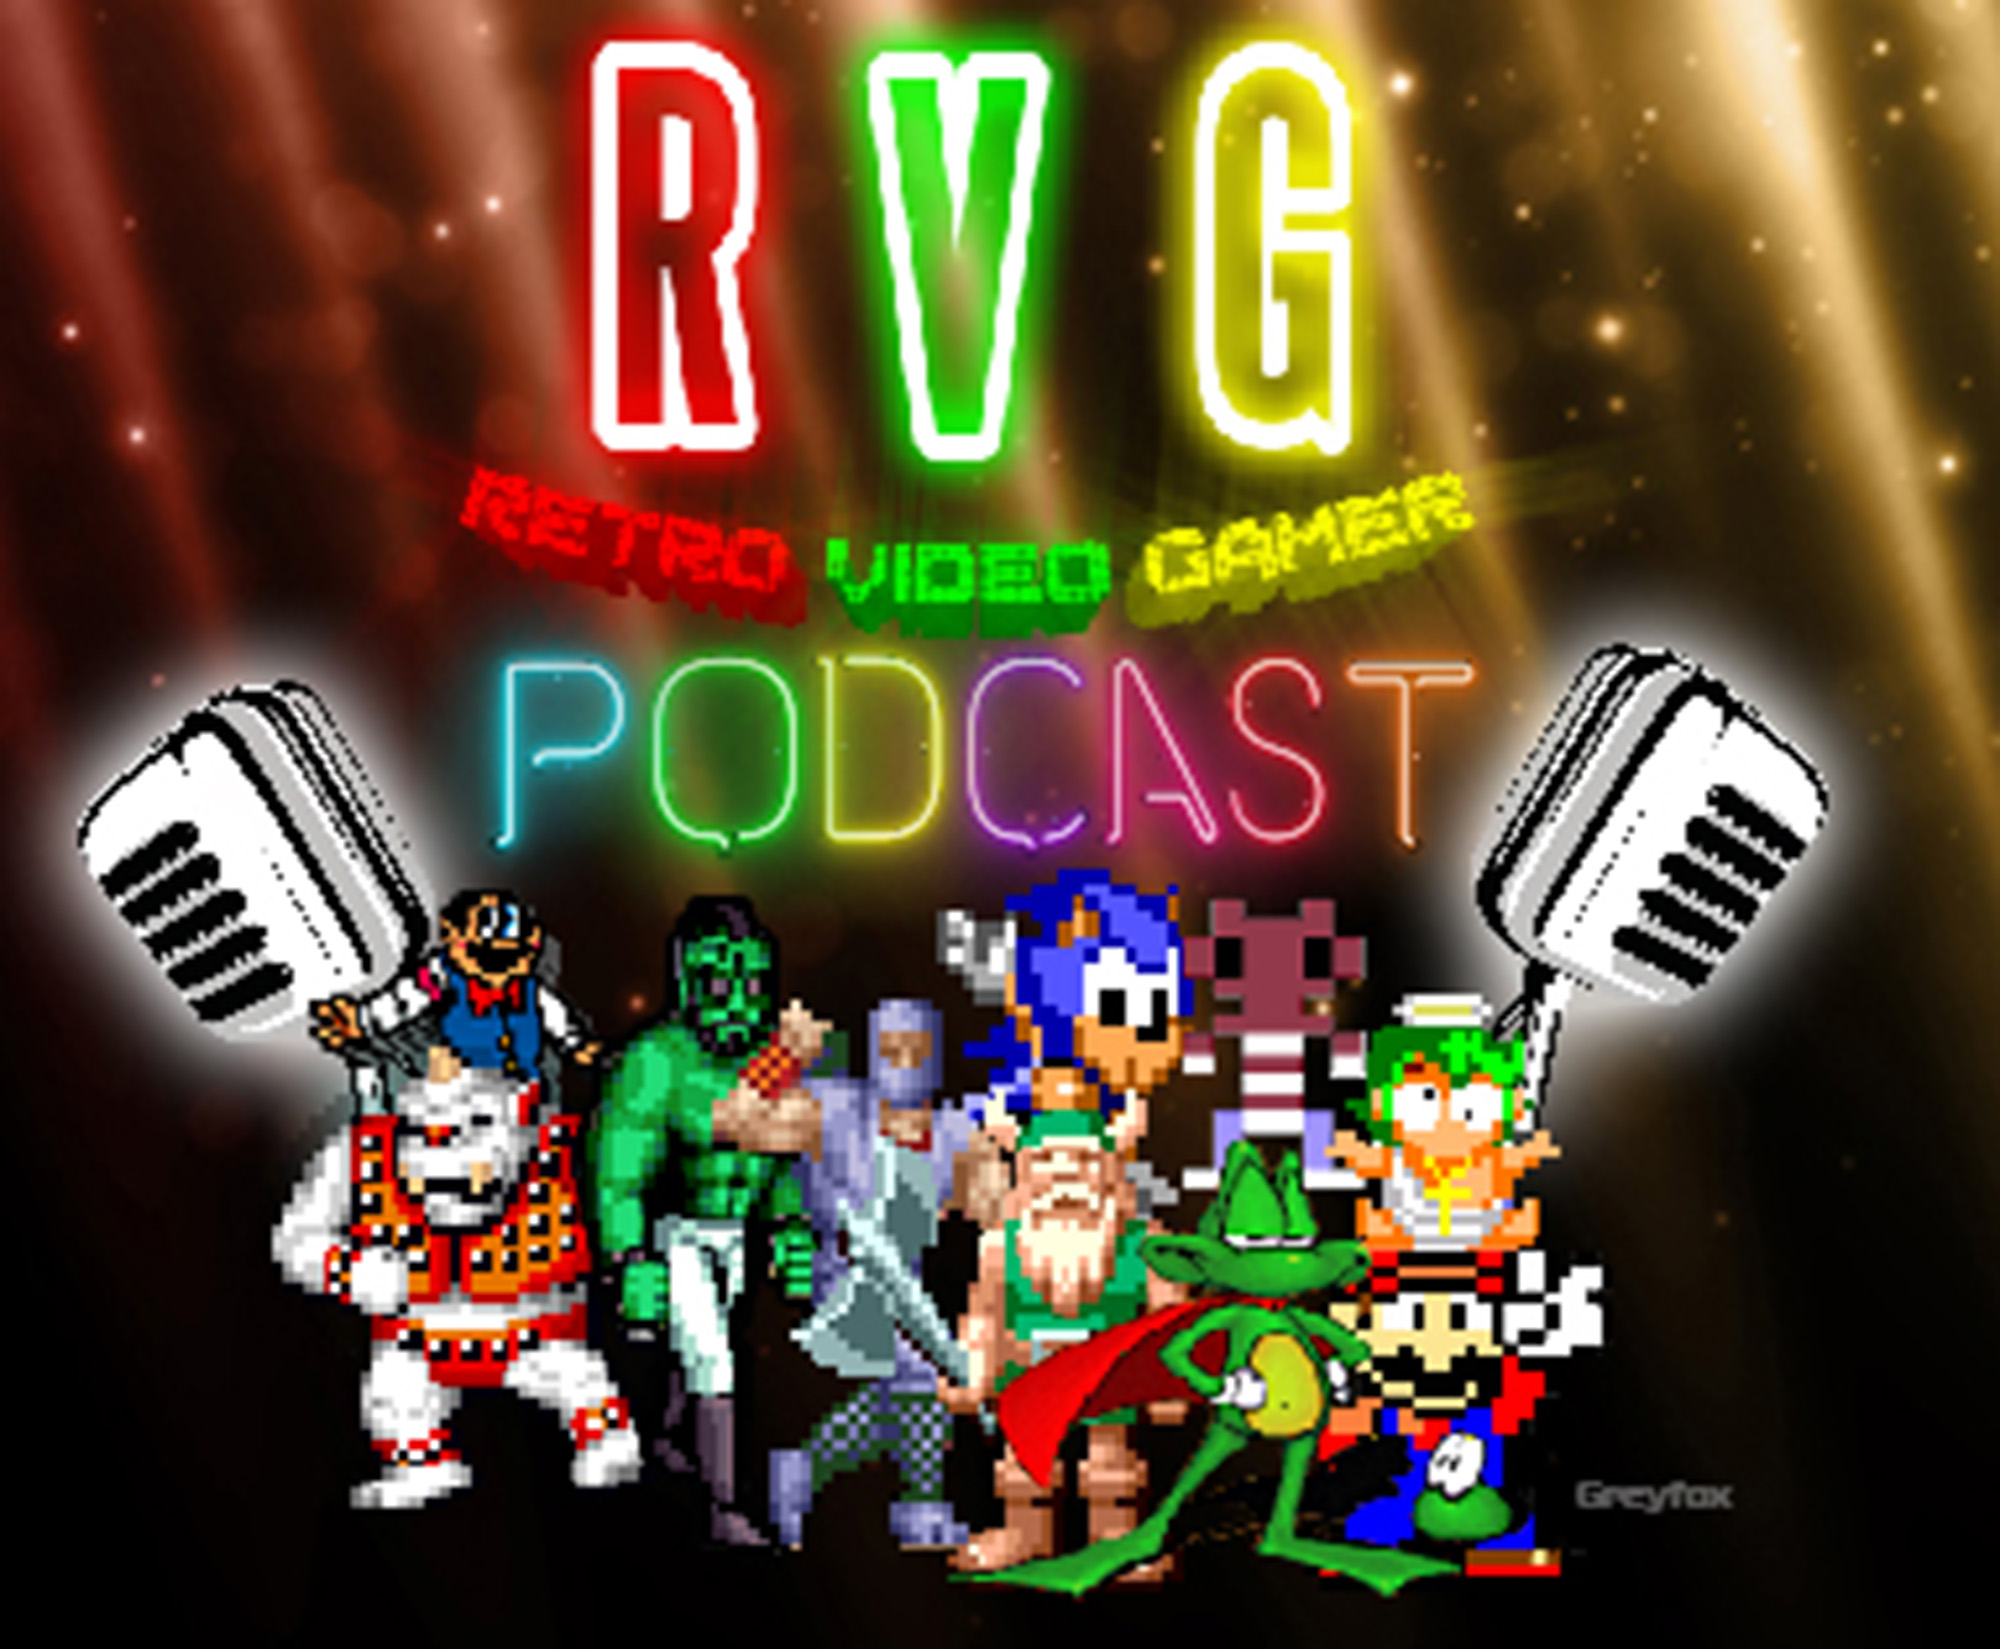 RVG Podcast Episode 7 - Influential Games